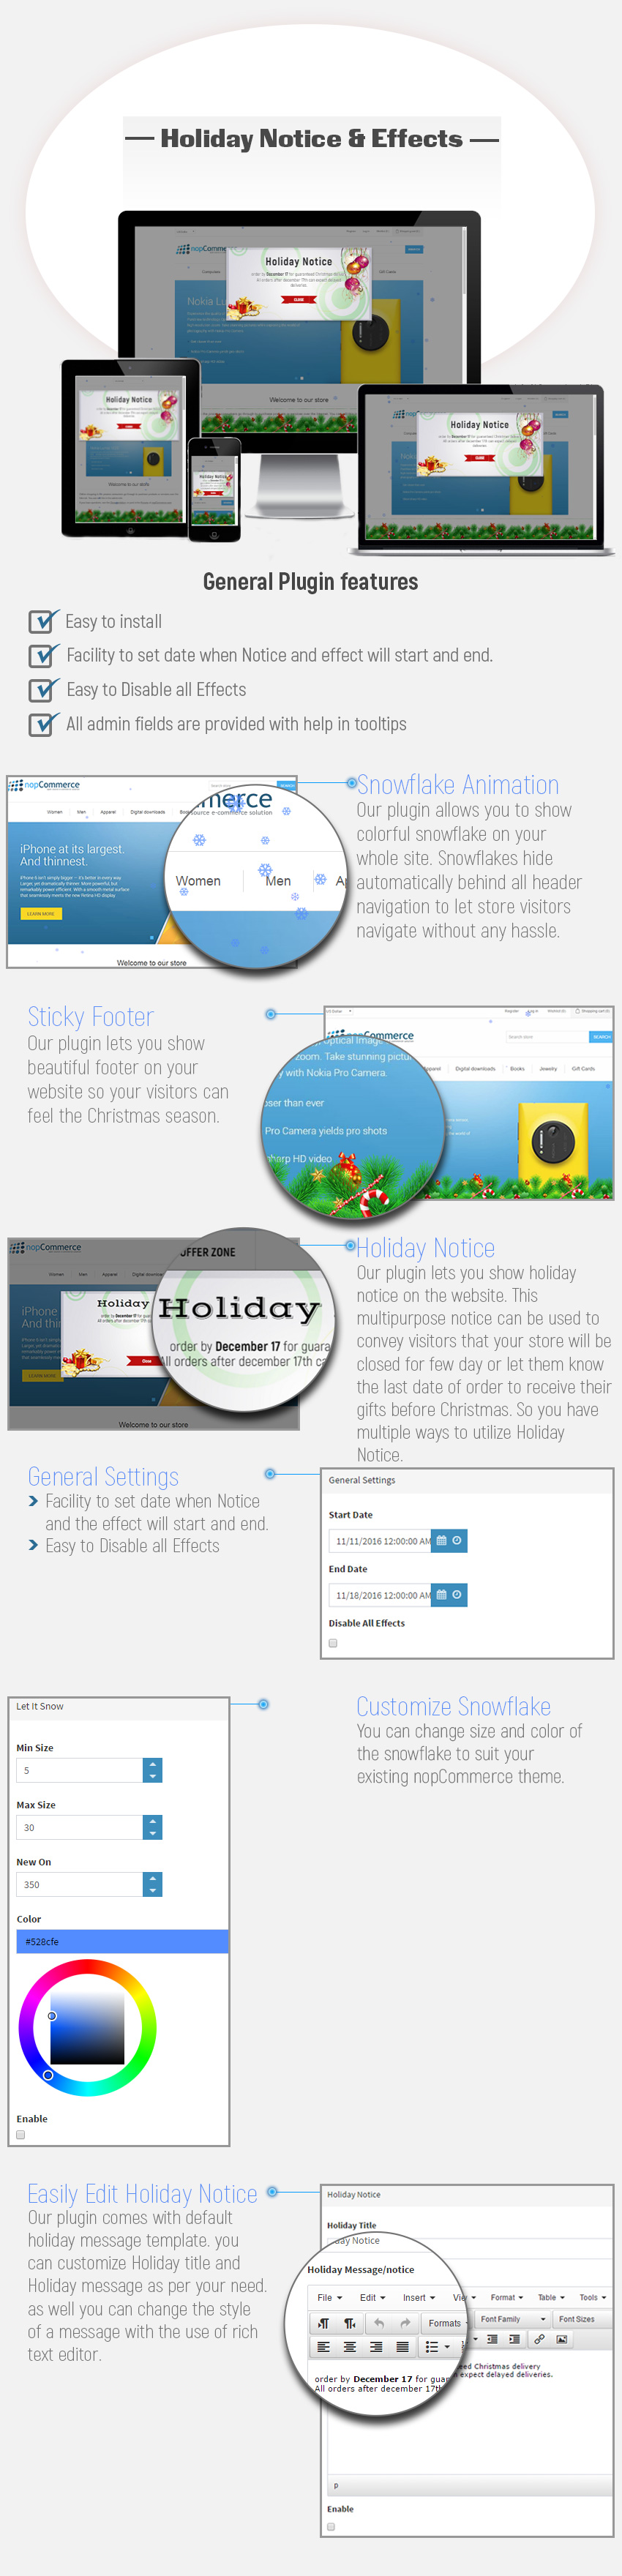 nopcommerce plugin for christmas holiday and effect on nopcommerce store